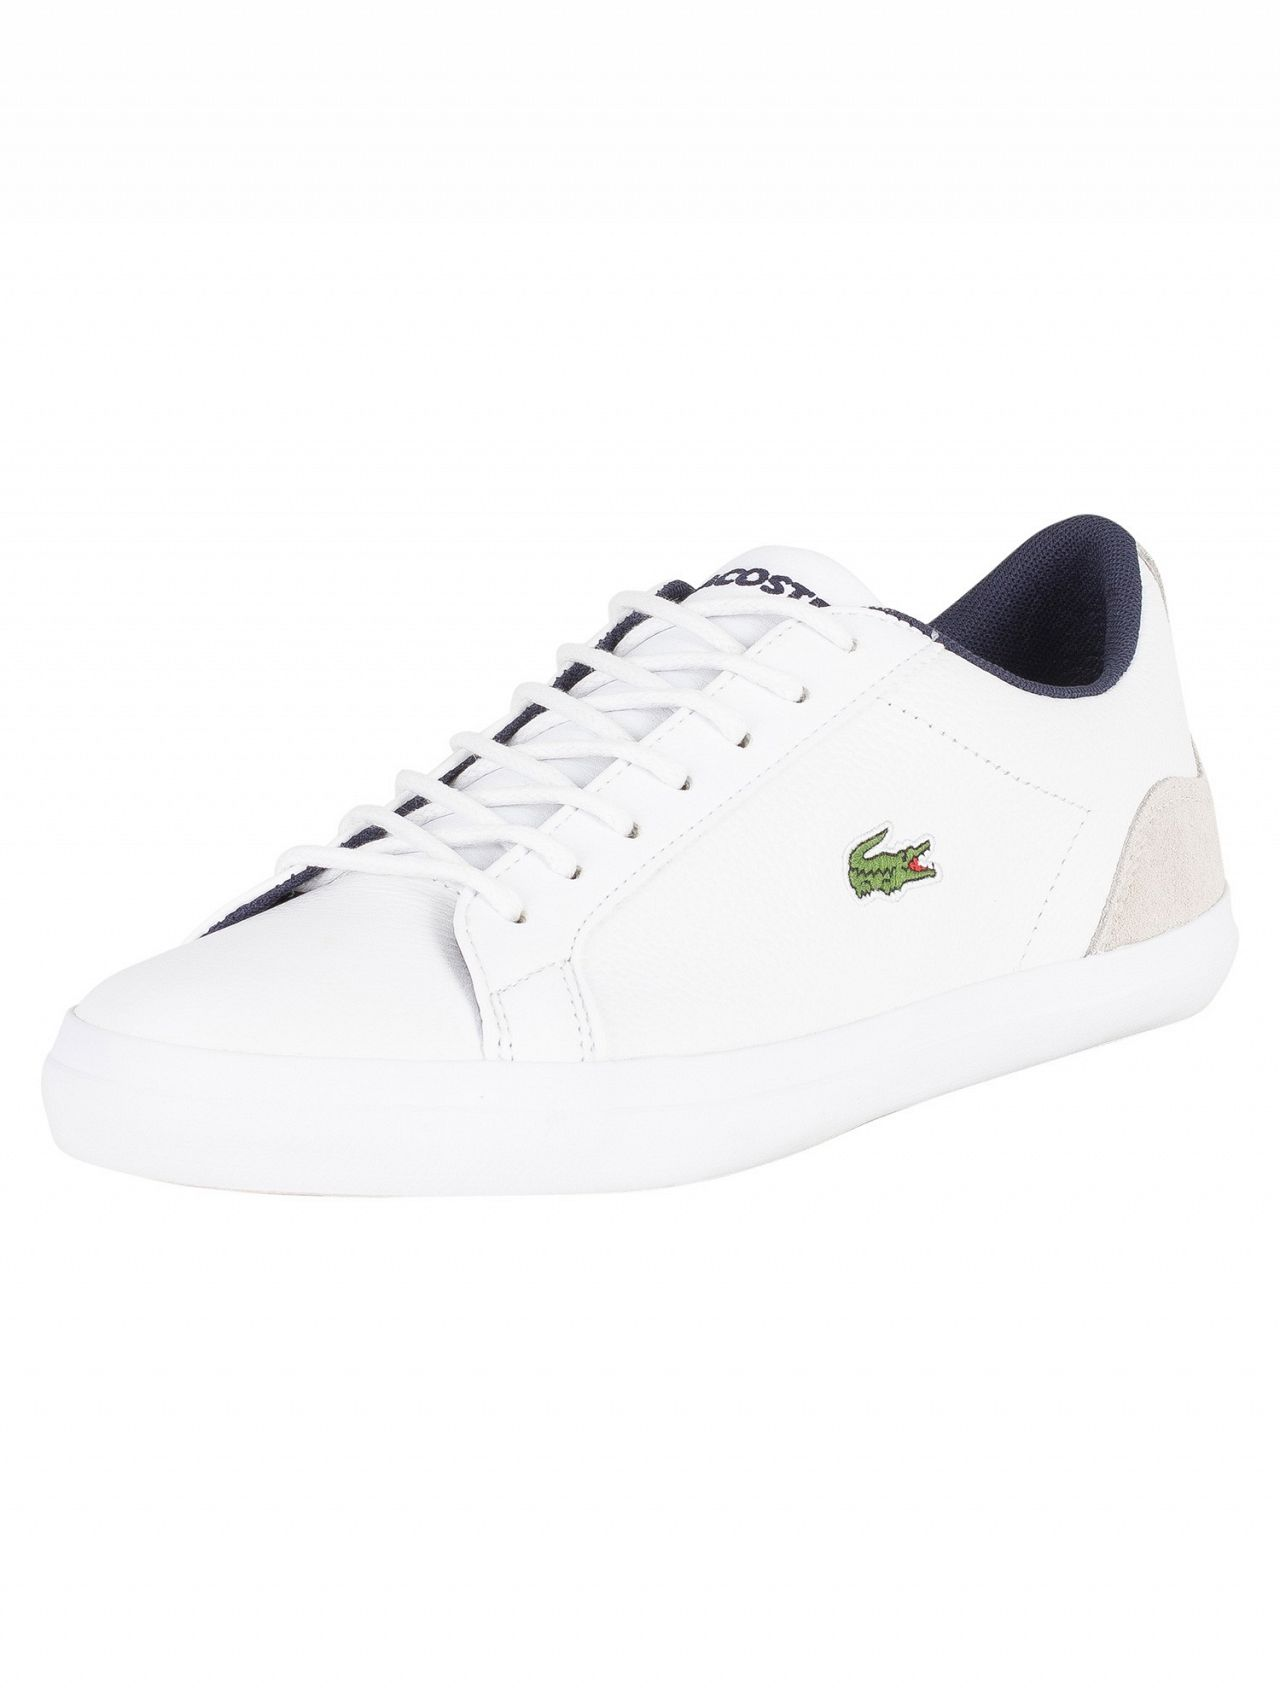 Lacoste White Trainers-Standout £69.95